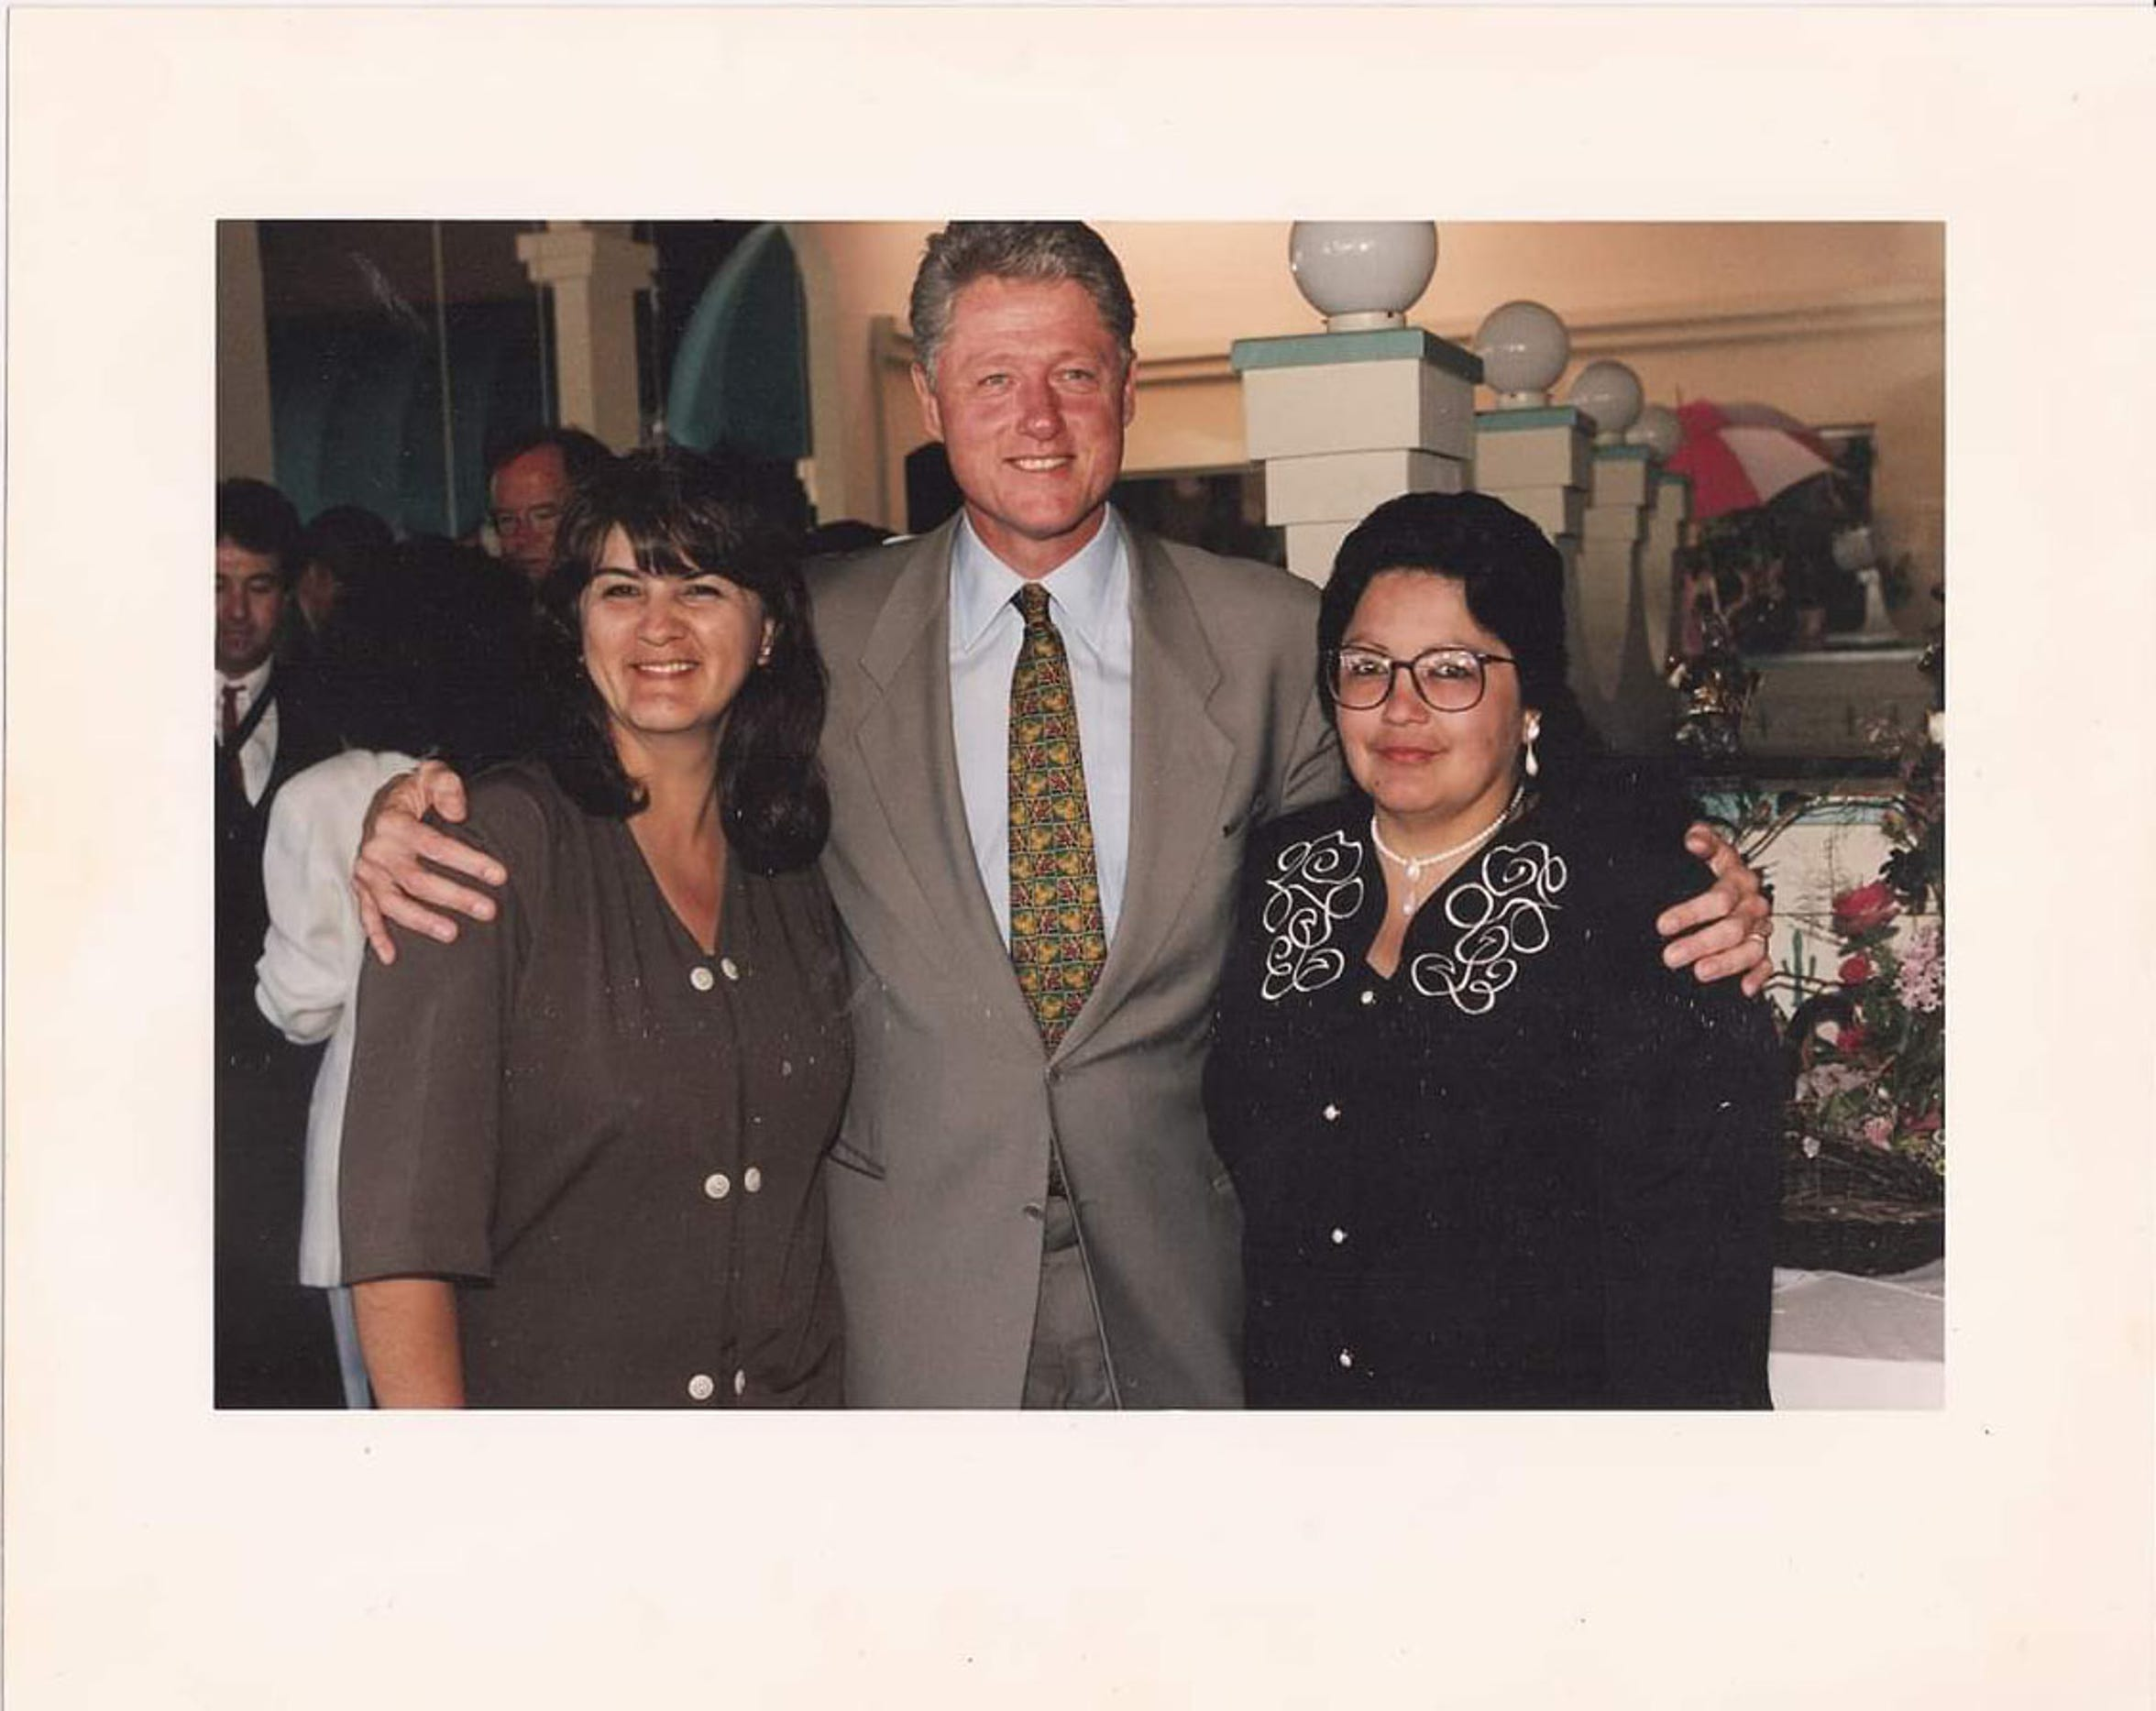 Gloria Torrez (left) and Angie Morfin (right), who started Mothers Against Violence, pose with President Bill Clinton during his tenure in the White House.